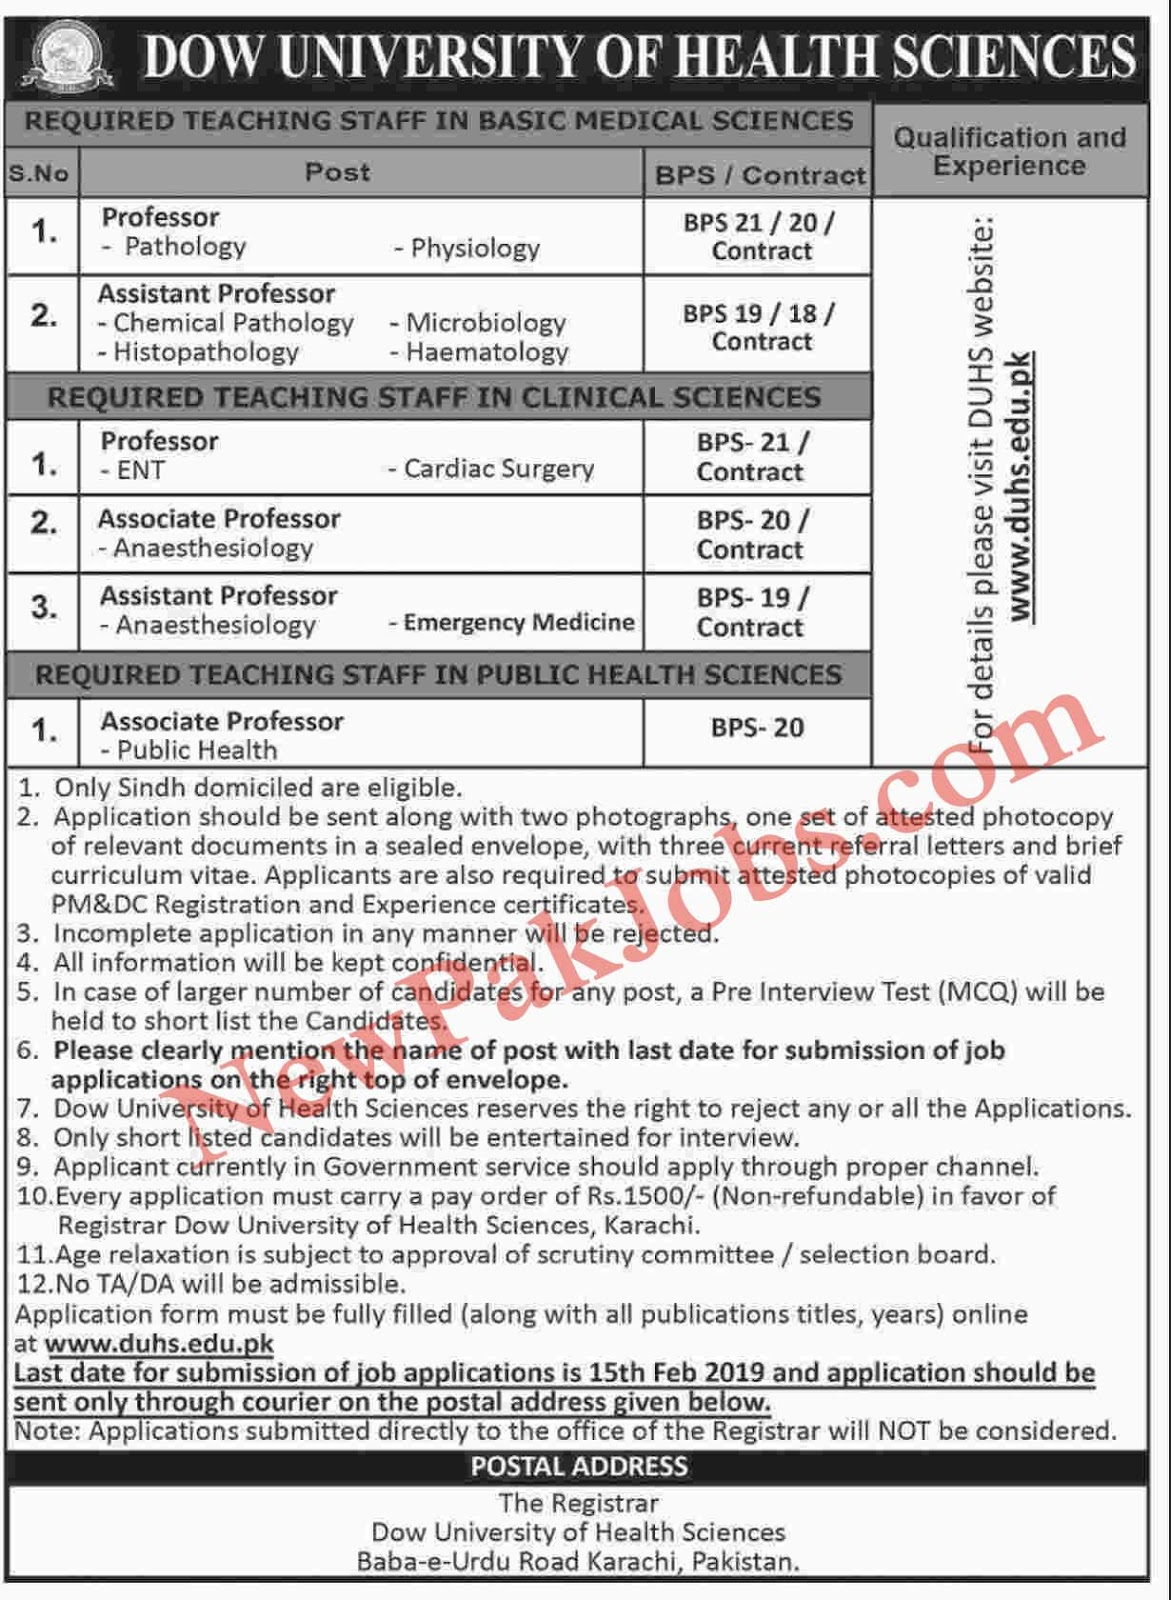 DOW University of Health Sciences Jobs 2019